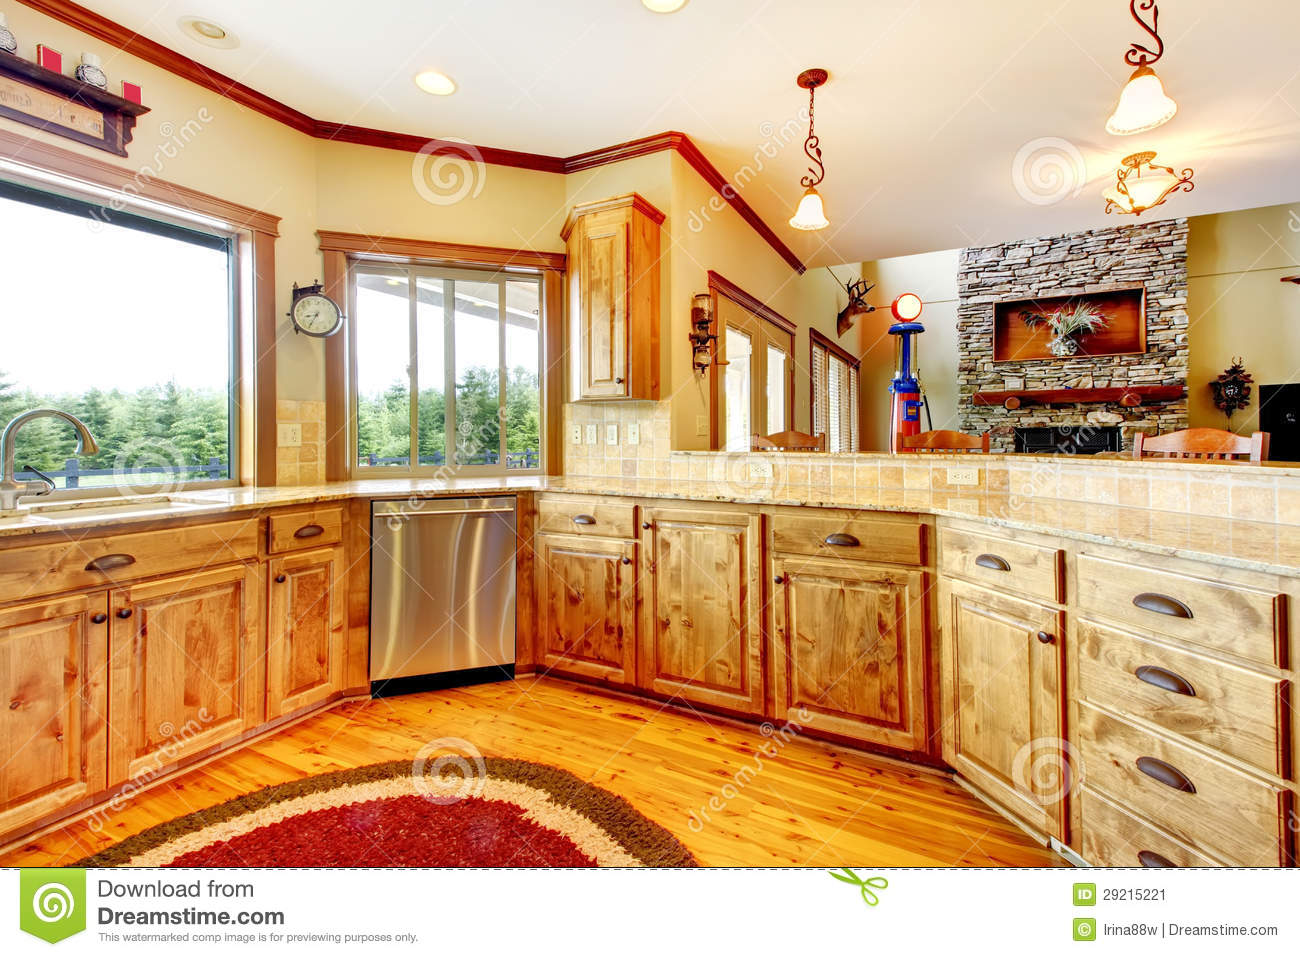 Wood luxury home kitchen interior new farm american home stock image image 29215221 for Interieur maison de luxe